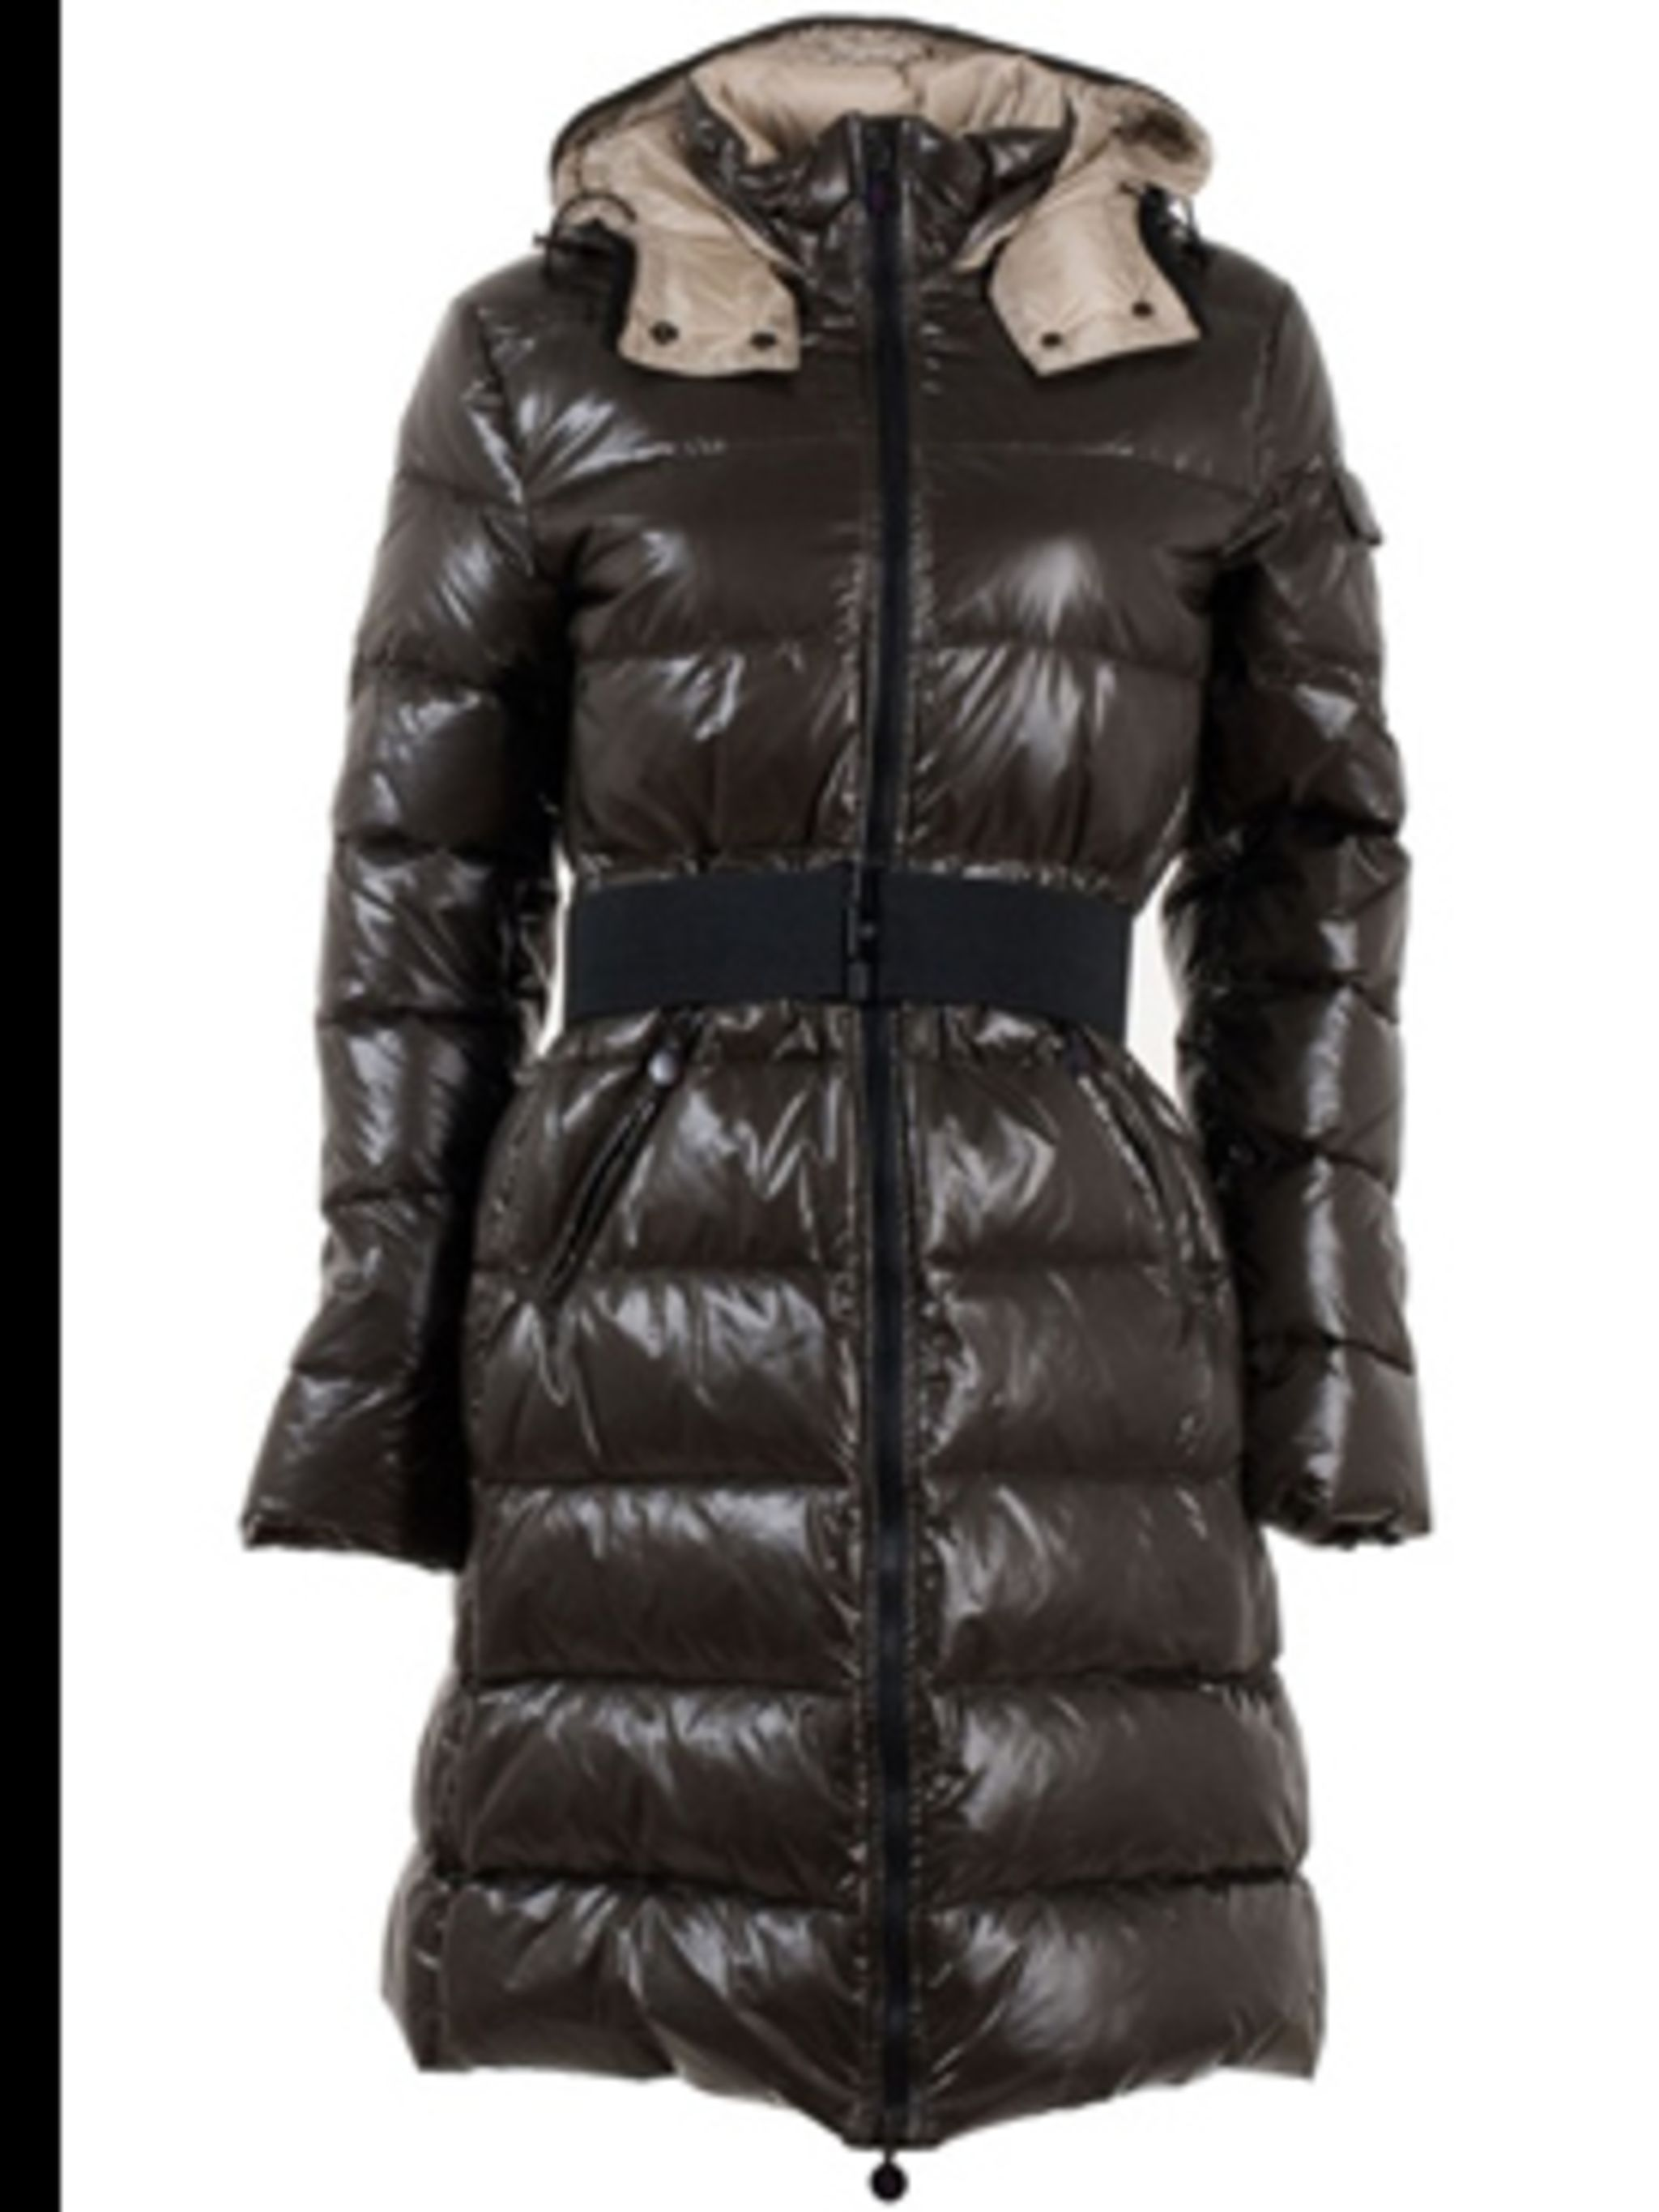 "<p>Coat, £416.00 by Moncler at <a href=""http://www.farfetch.com/shopping/women/search/item10009777.aspx"">Farfetch</a></p>"